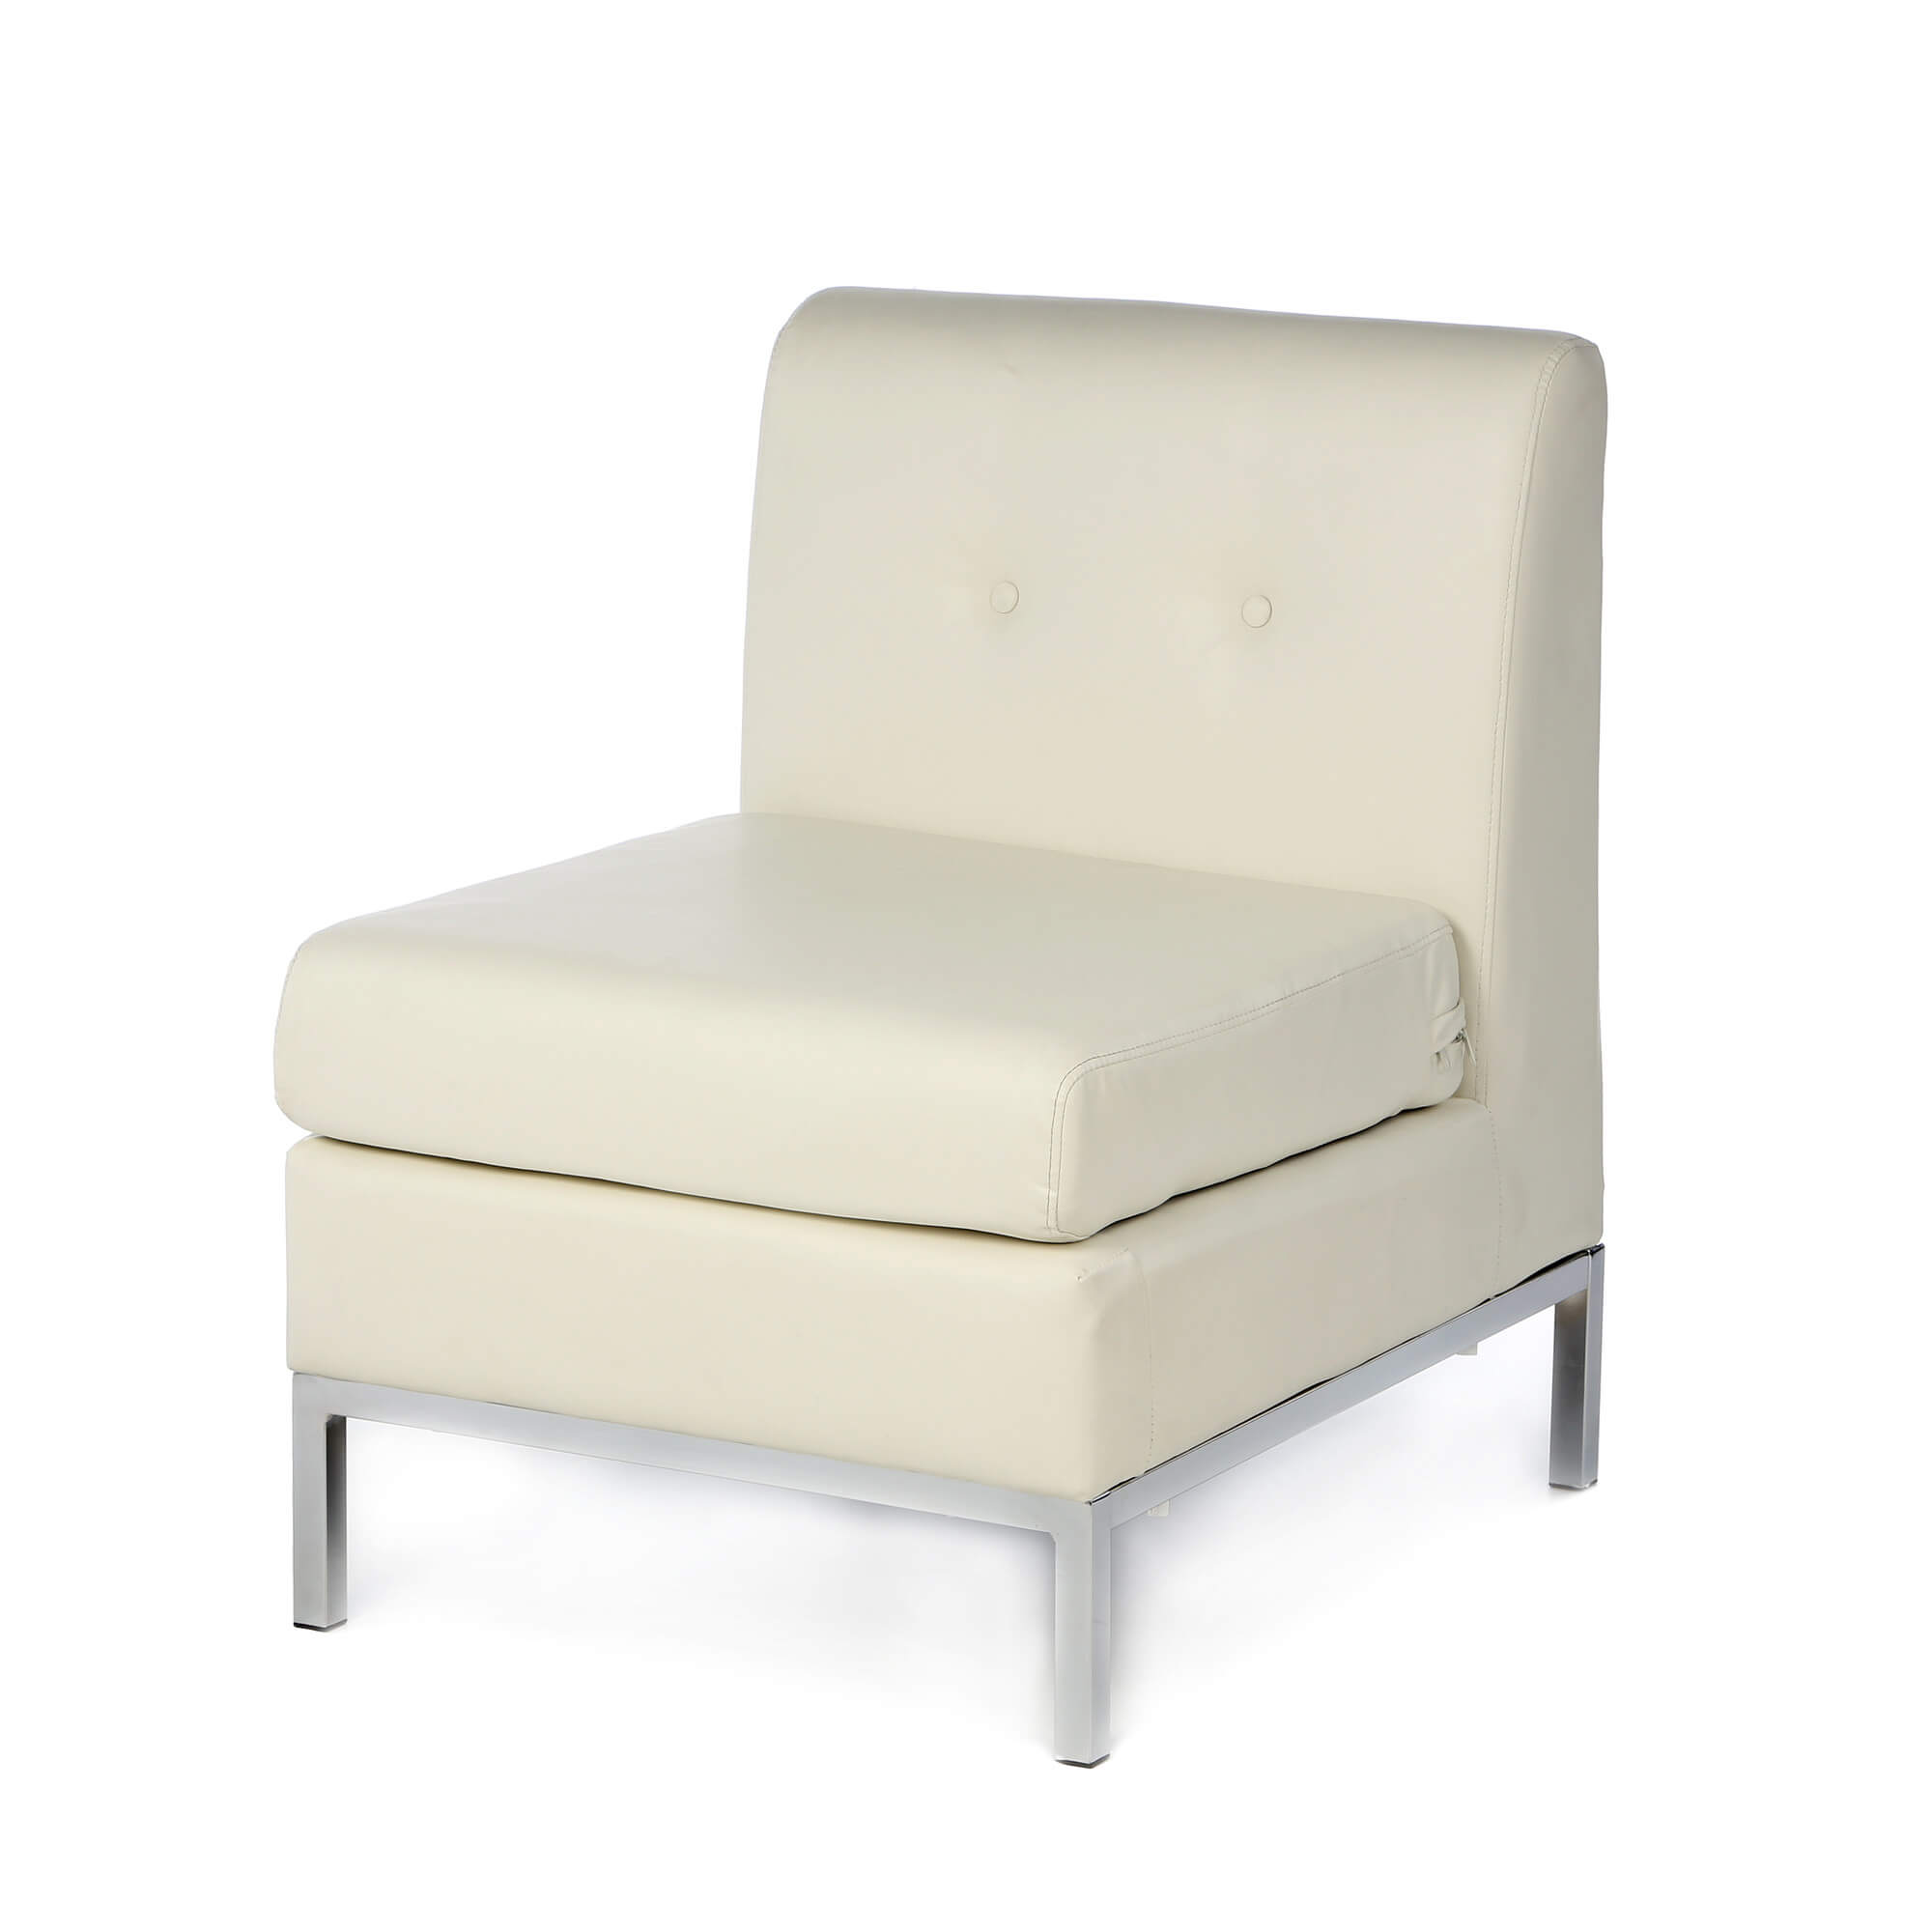 Classically Simple Club Chair From Castleton Home In Tufted White Faux  Leather Cushion Over Hardwood Construction .